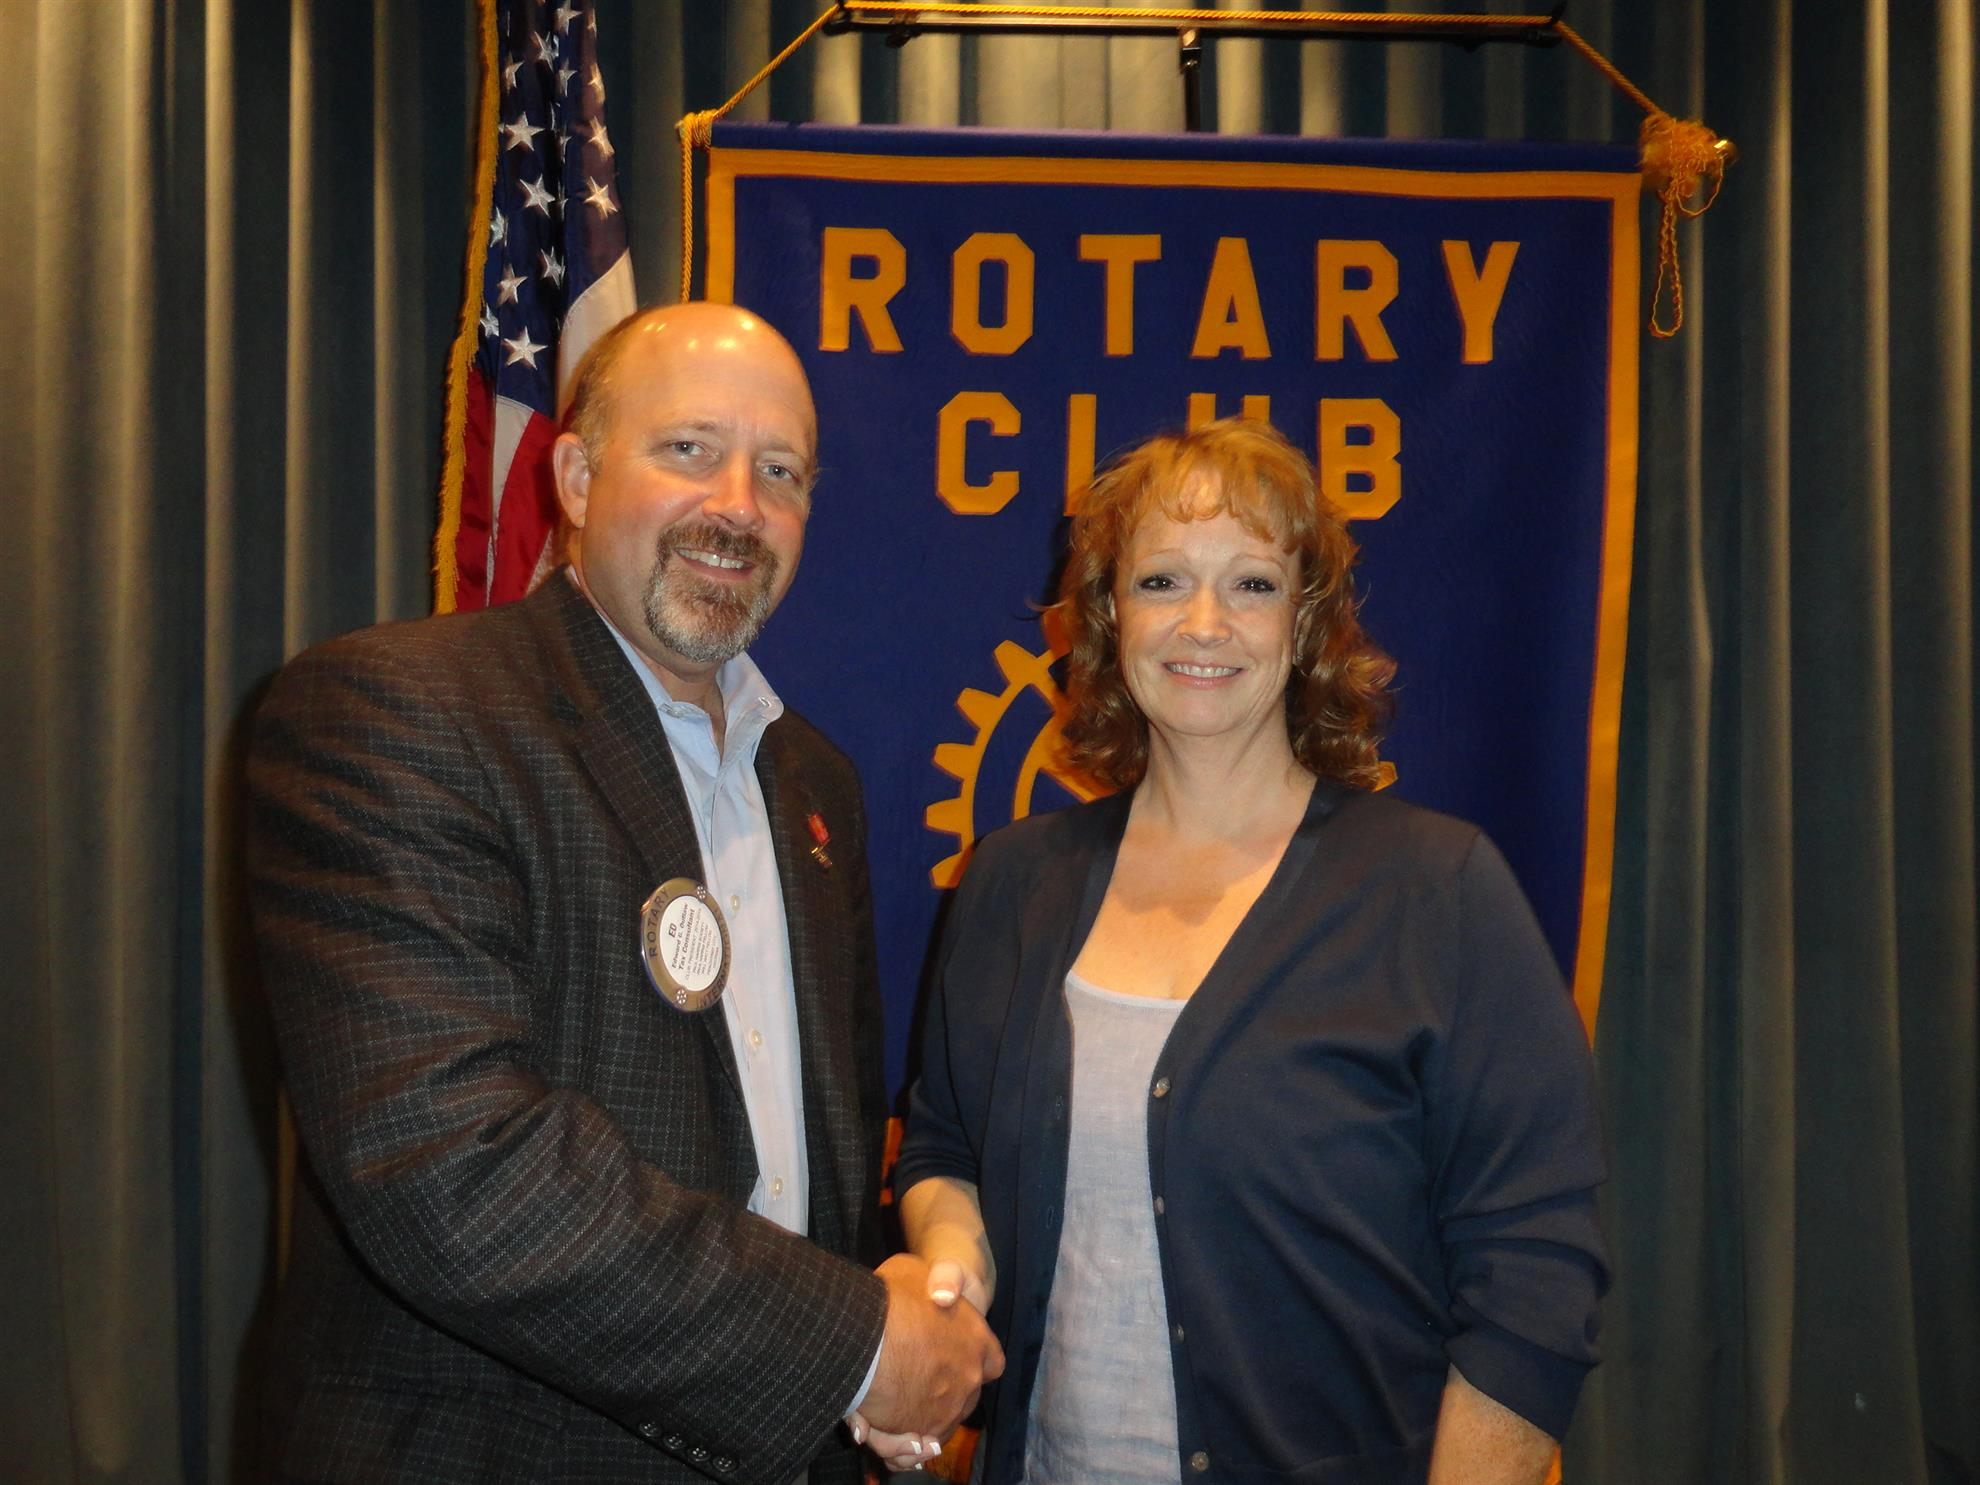 Stories | Rotary Club of Peachtree City